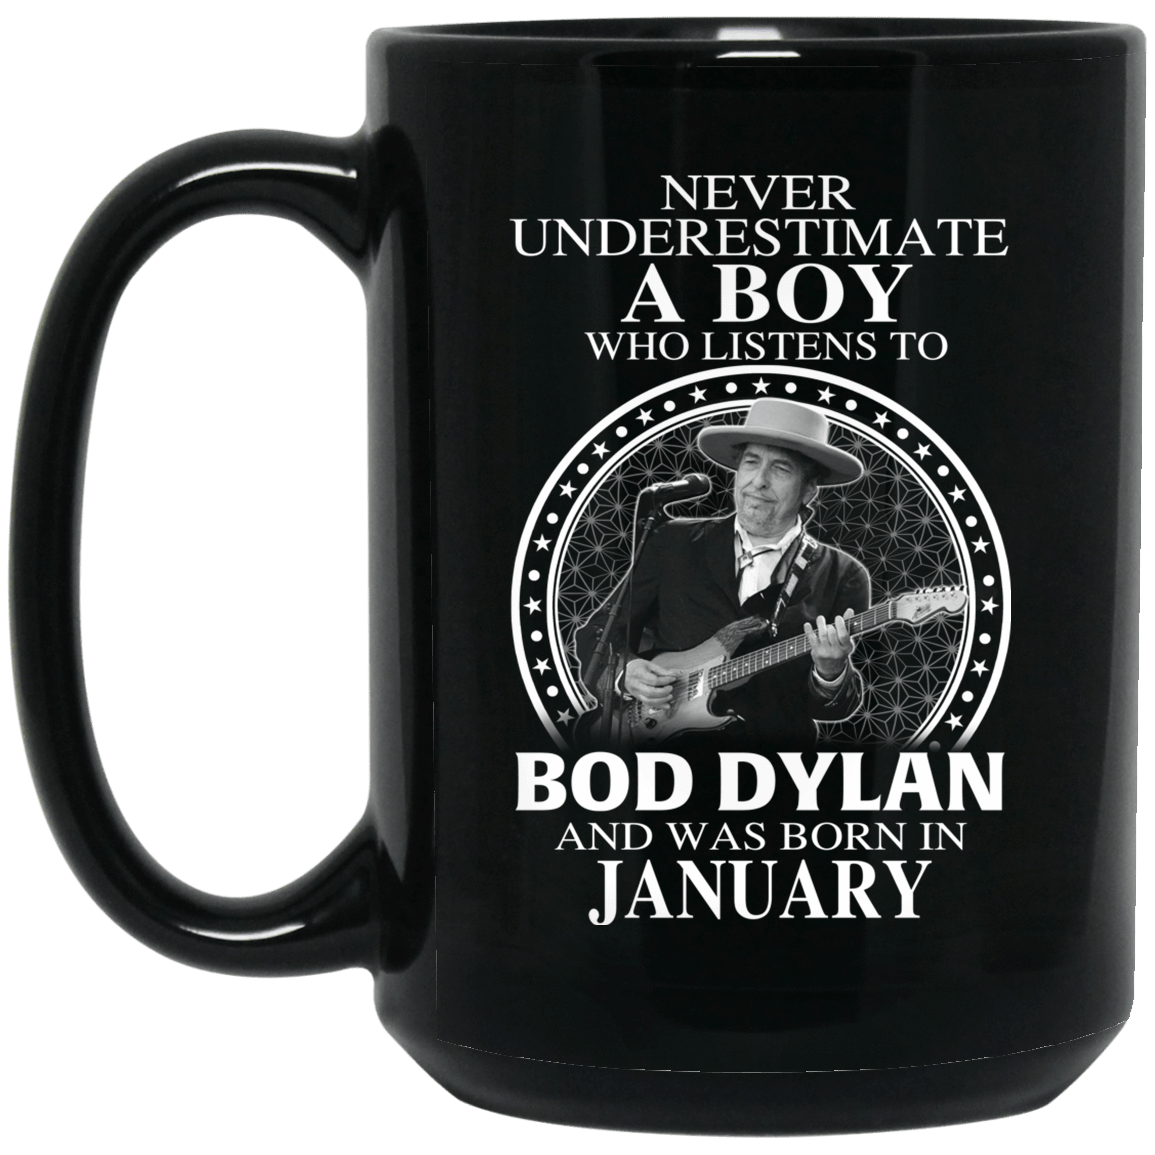 A Boy Who Listens To Bob Dylan And Was Born In January Mug 1066-10182-76153795-49311 - Tee Ript